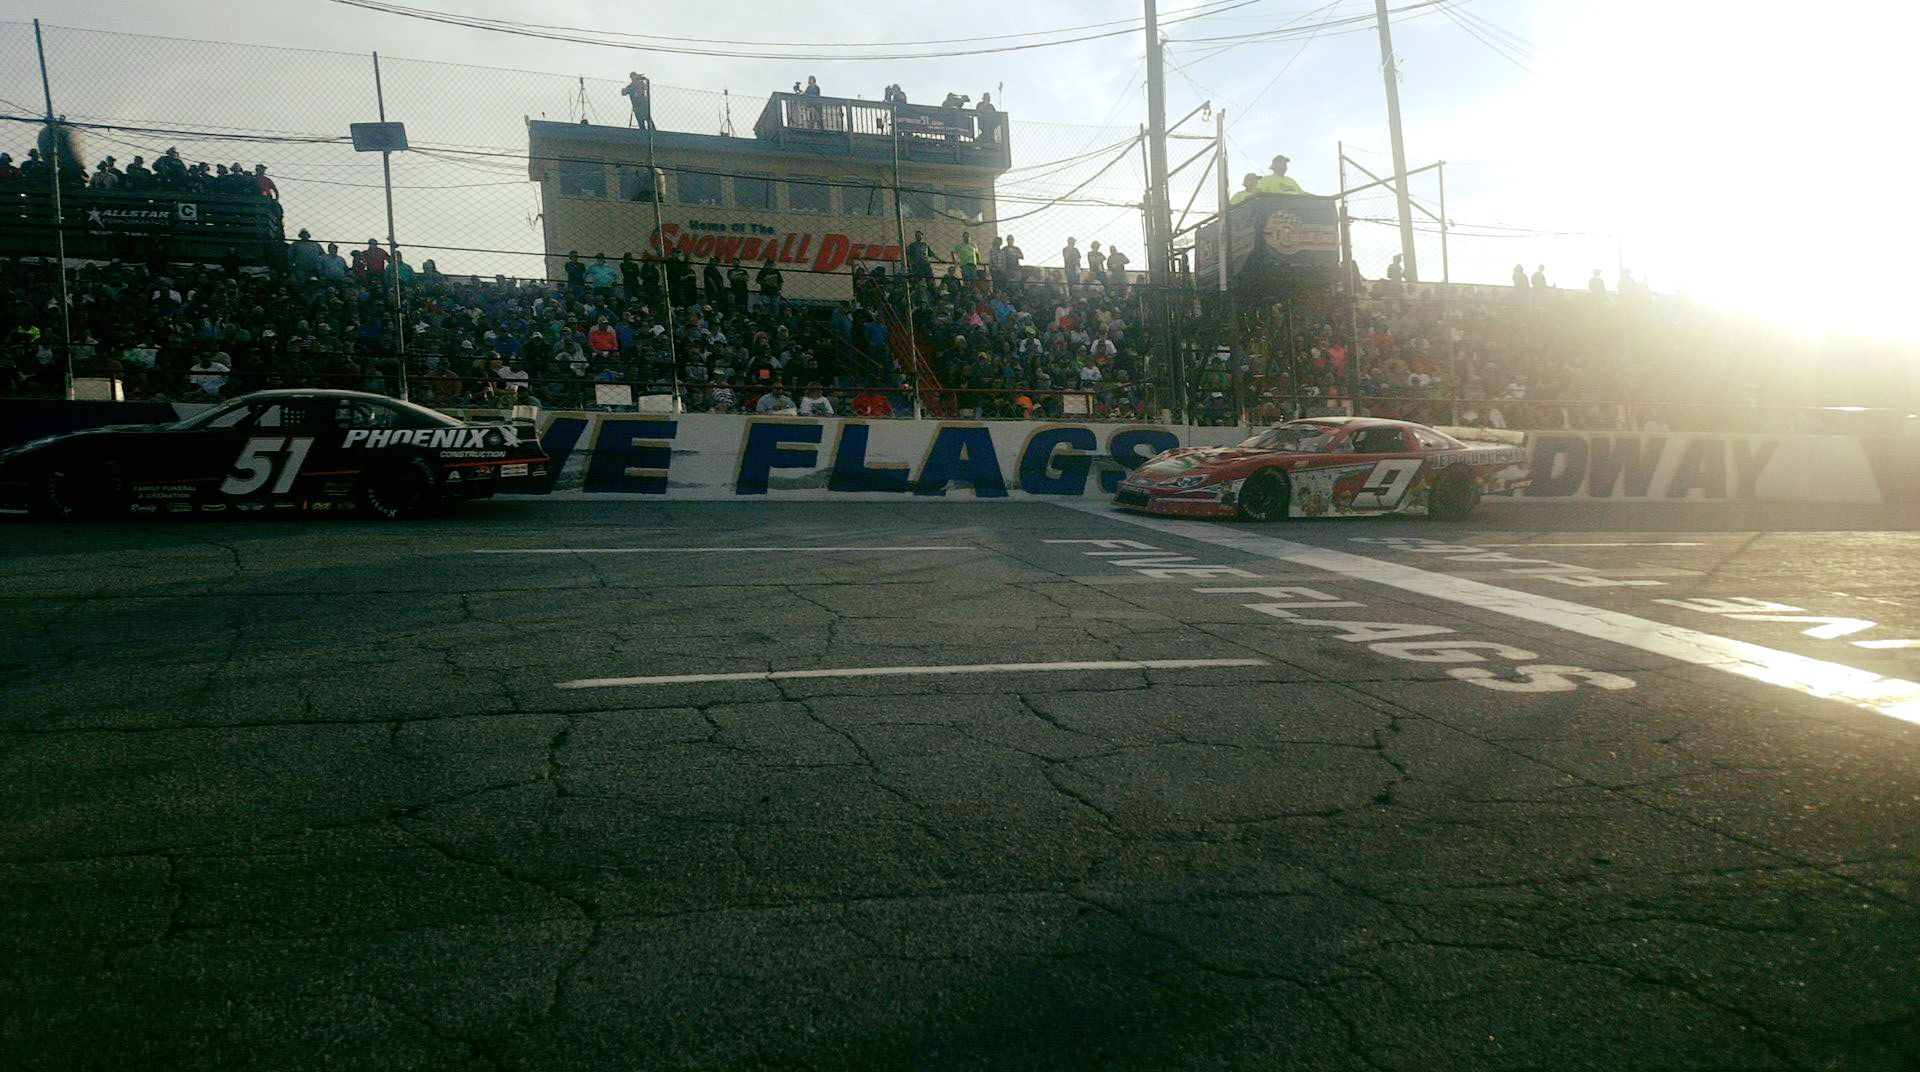 Kyle Busch and Jeff Choquette in the front of the Snowball Derby at 5 Flags Speedway